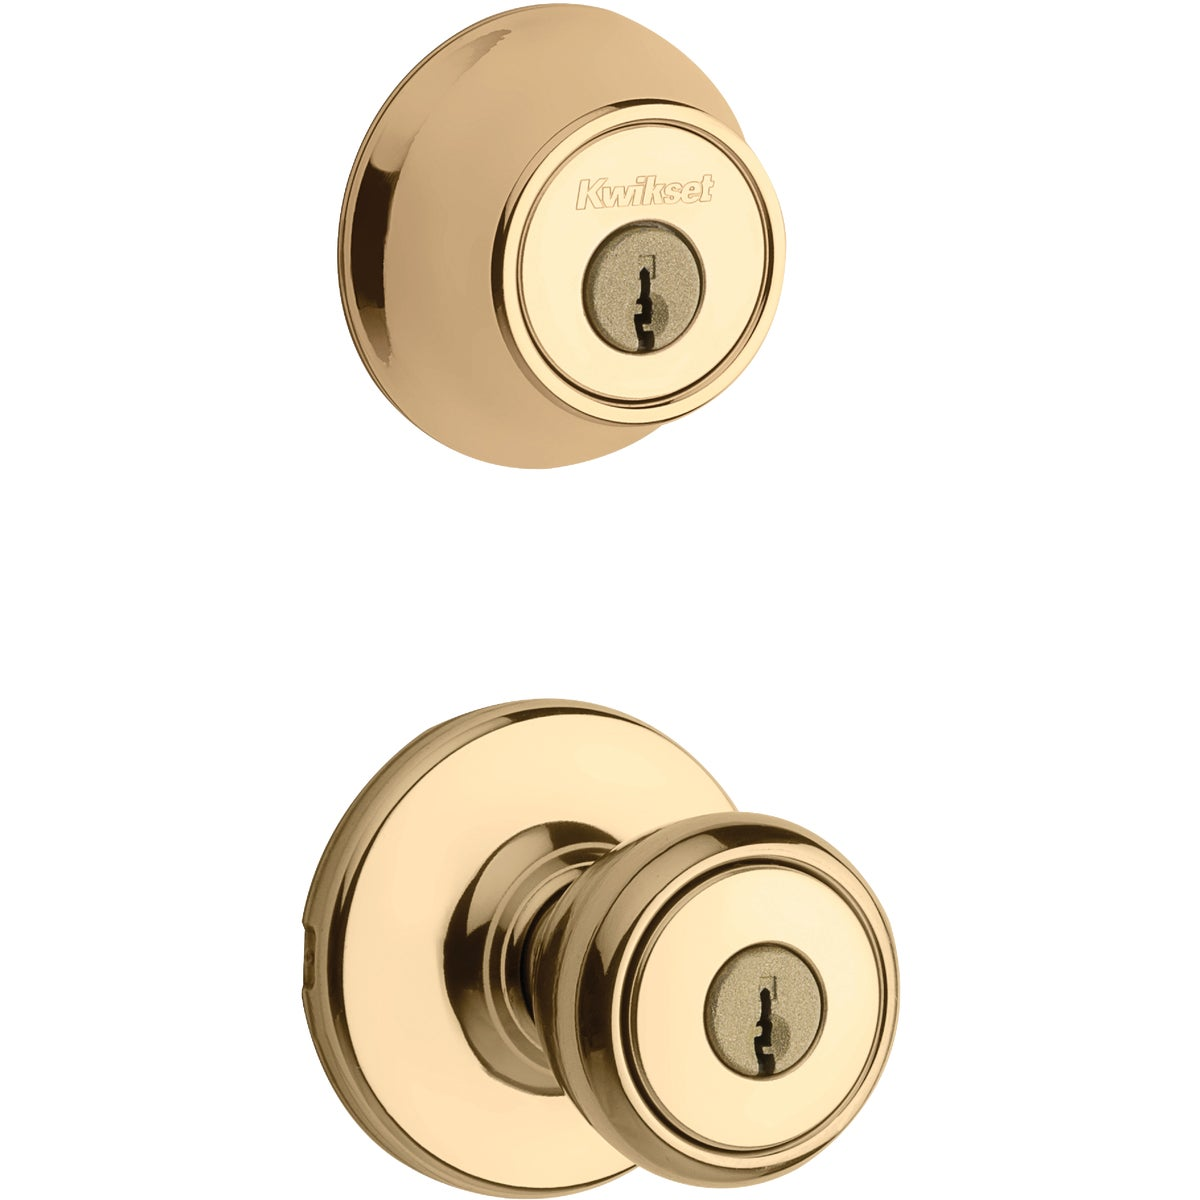 Kwikset PB TYLO 2CYL COMBO PACK 695T 3 CP CODE K6